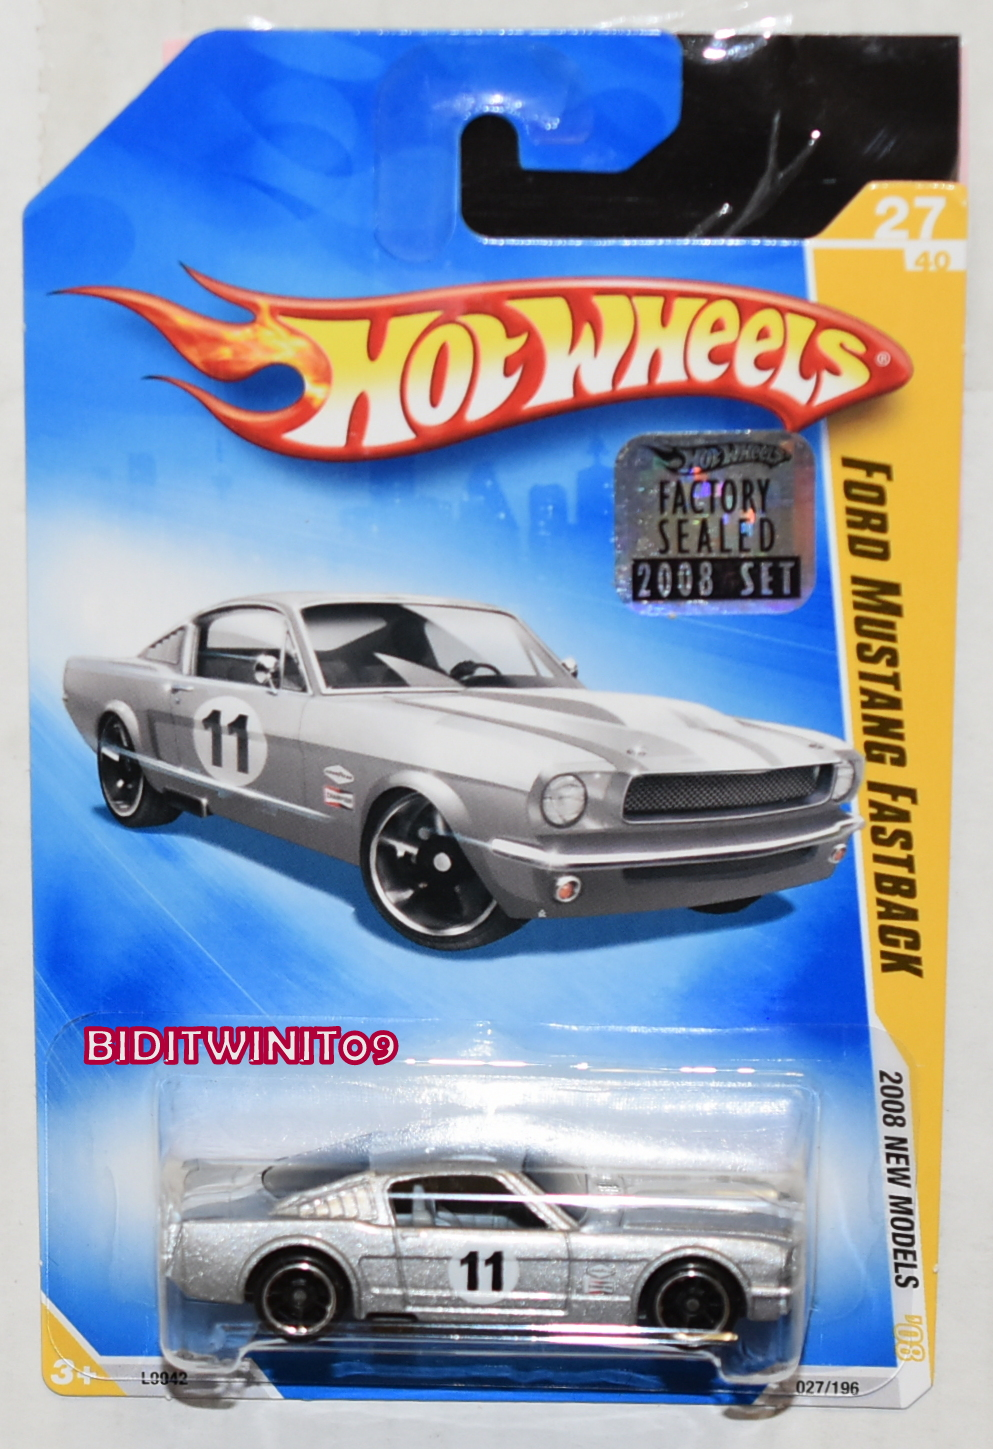 HOT WHEELS 2008 NEW MODELS FORD MUSTANG FASTBACK #27/40 SILVER FACTORY SEALED